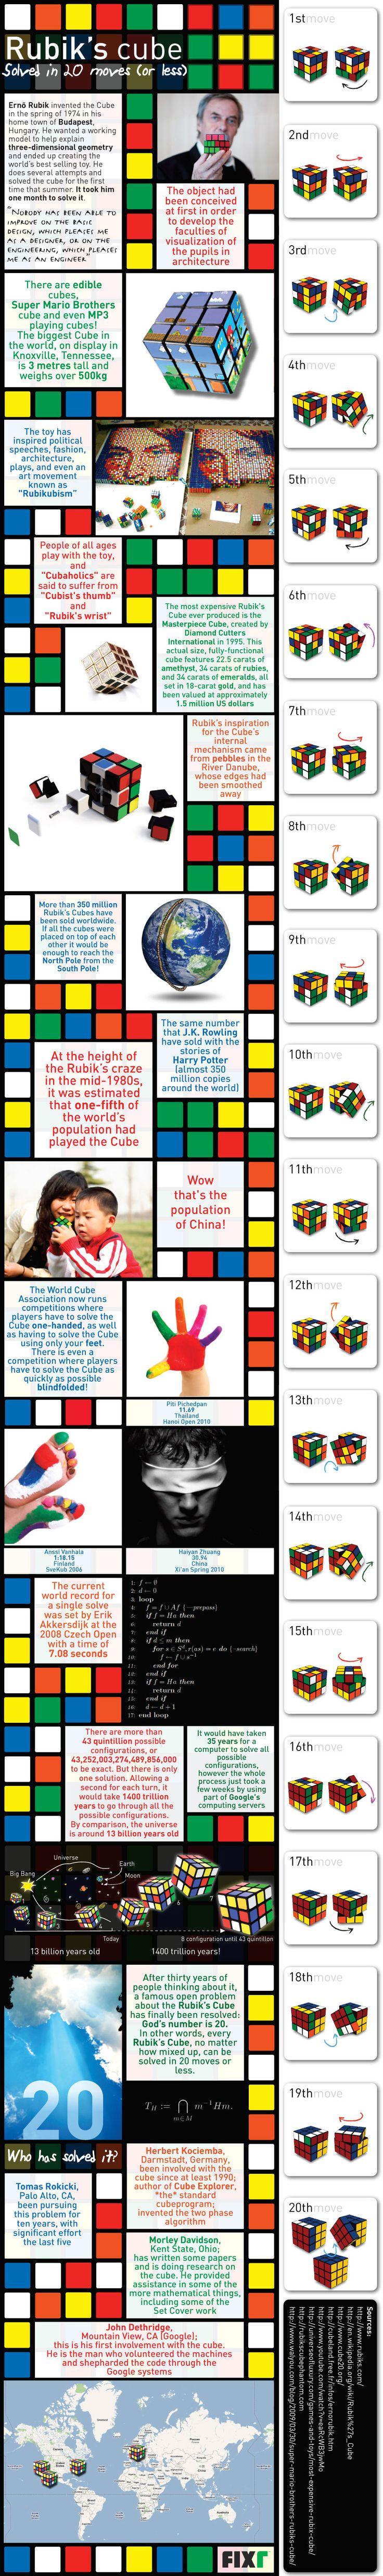 Rubik's Cube solve in 20 moves or less. I struggle to grasp this concept. Must find Cube and try.